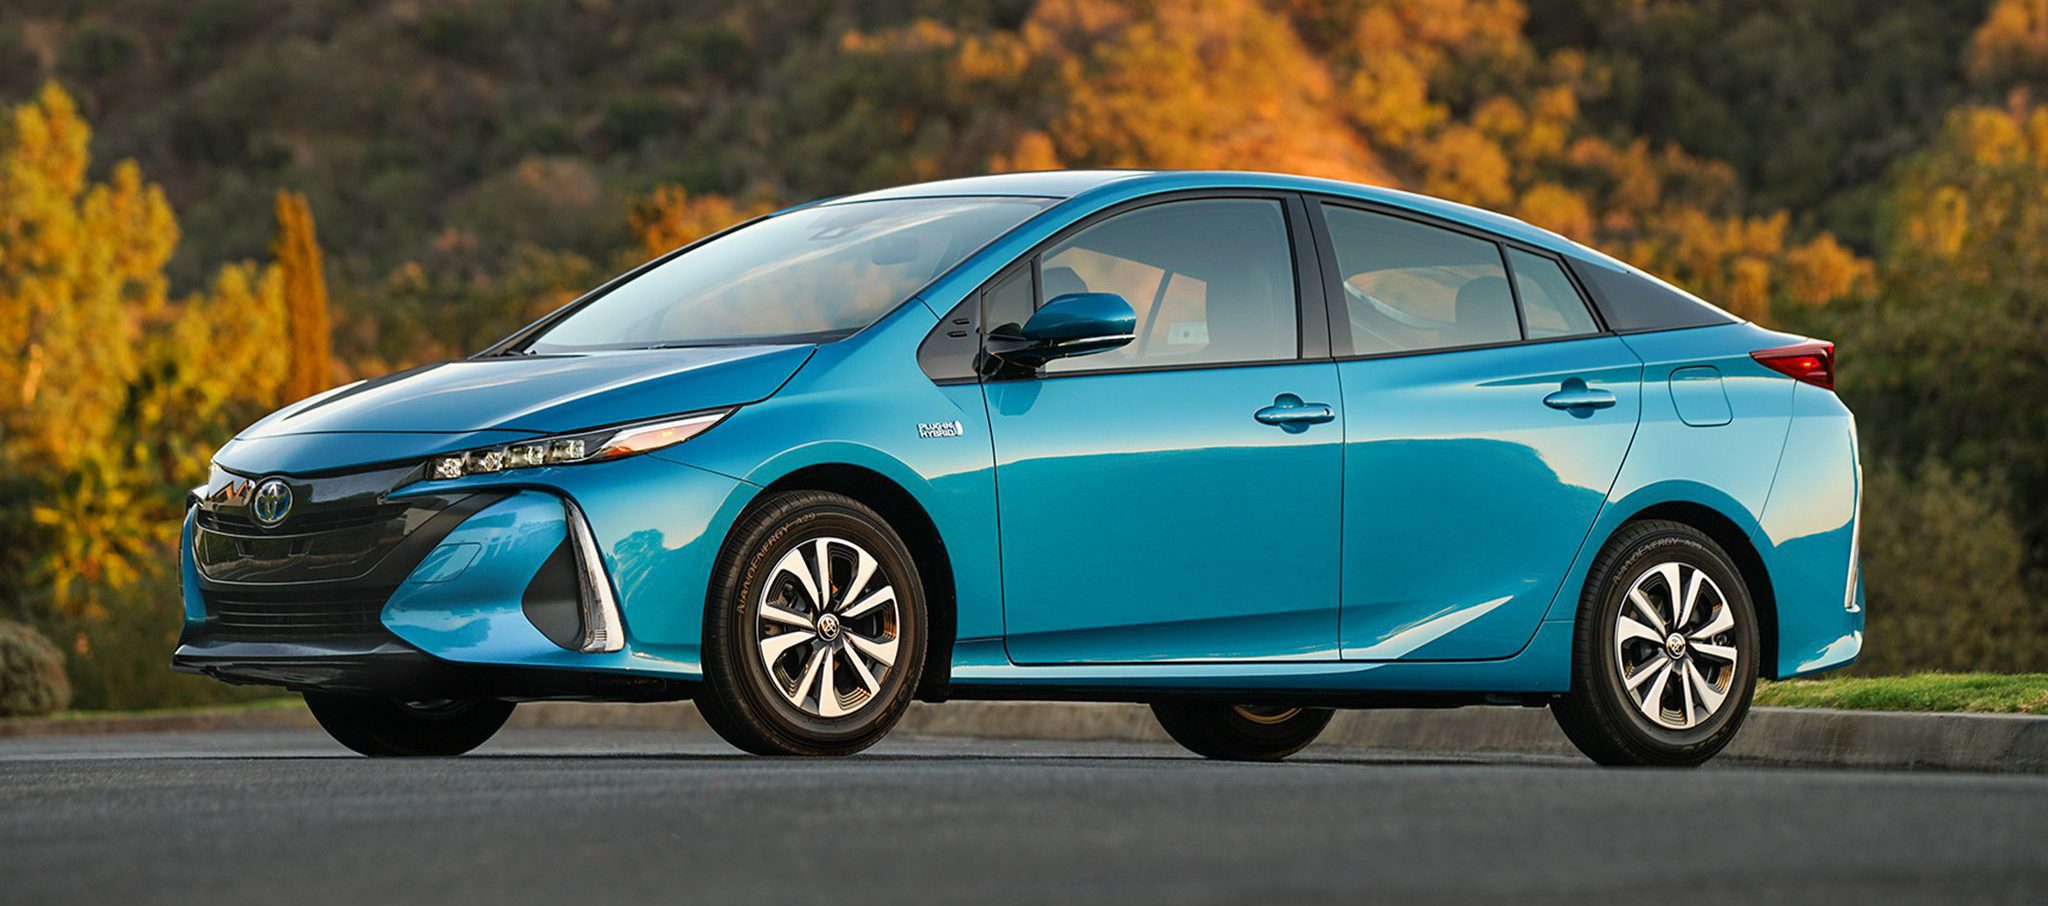 electrek.co - Fred Lambert - Toyota: 'nobody is selling electric vehicles at a profitable margin' - wrong!